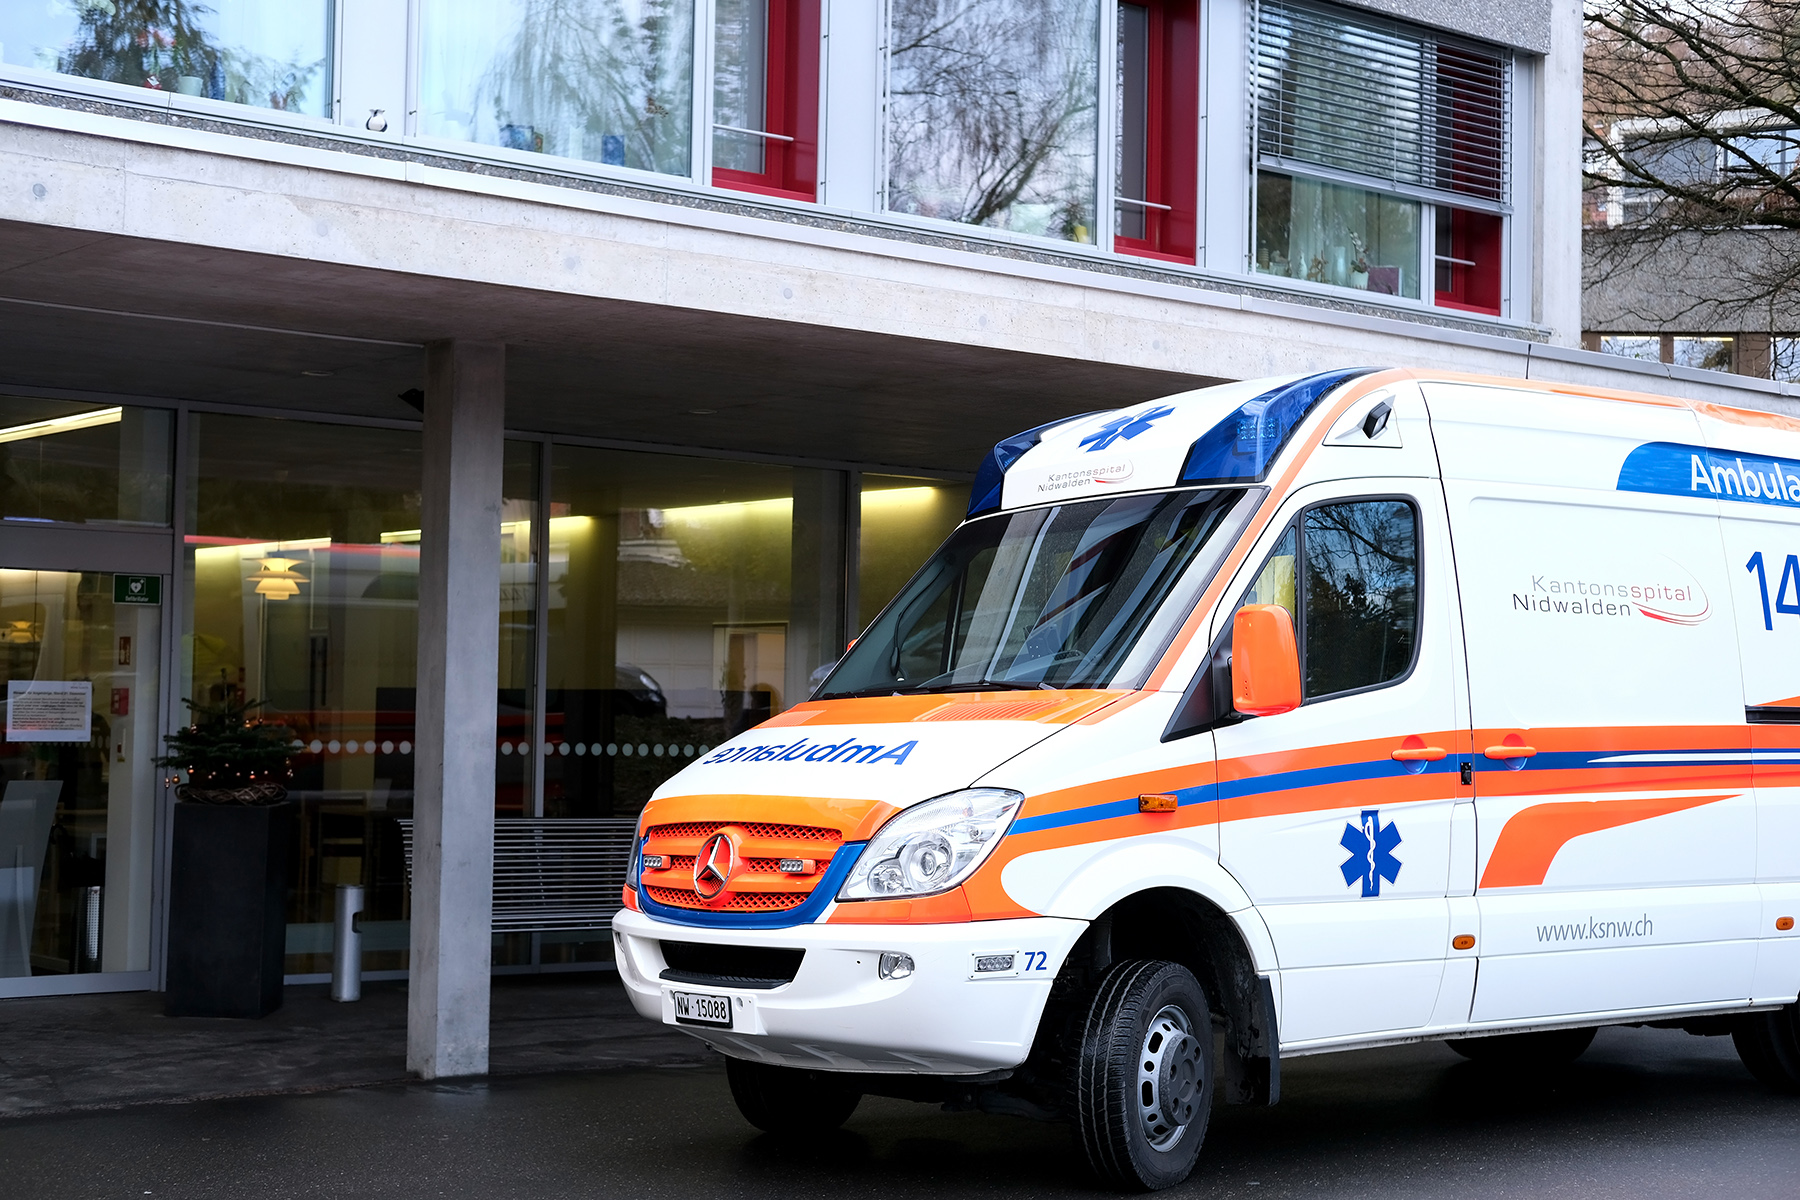 An ambulance at a hospital in Lucerne